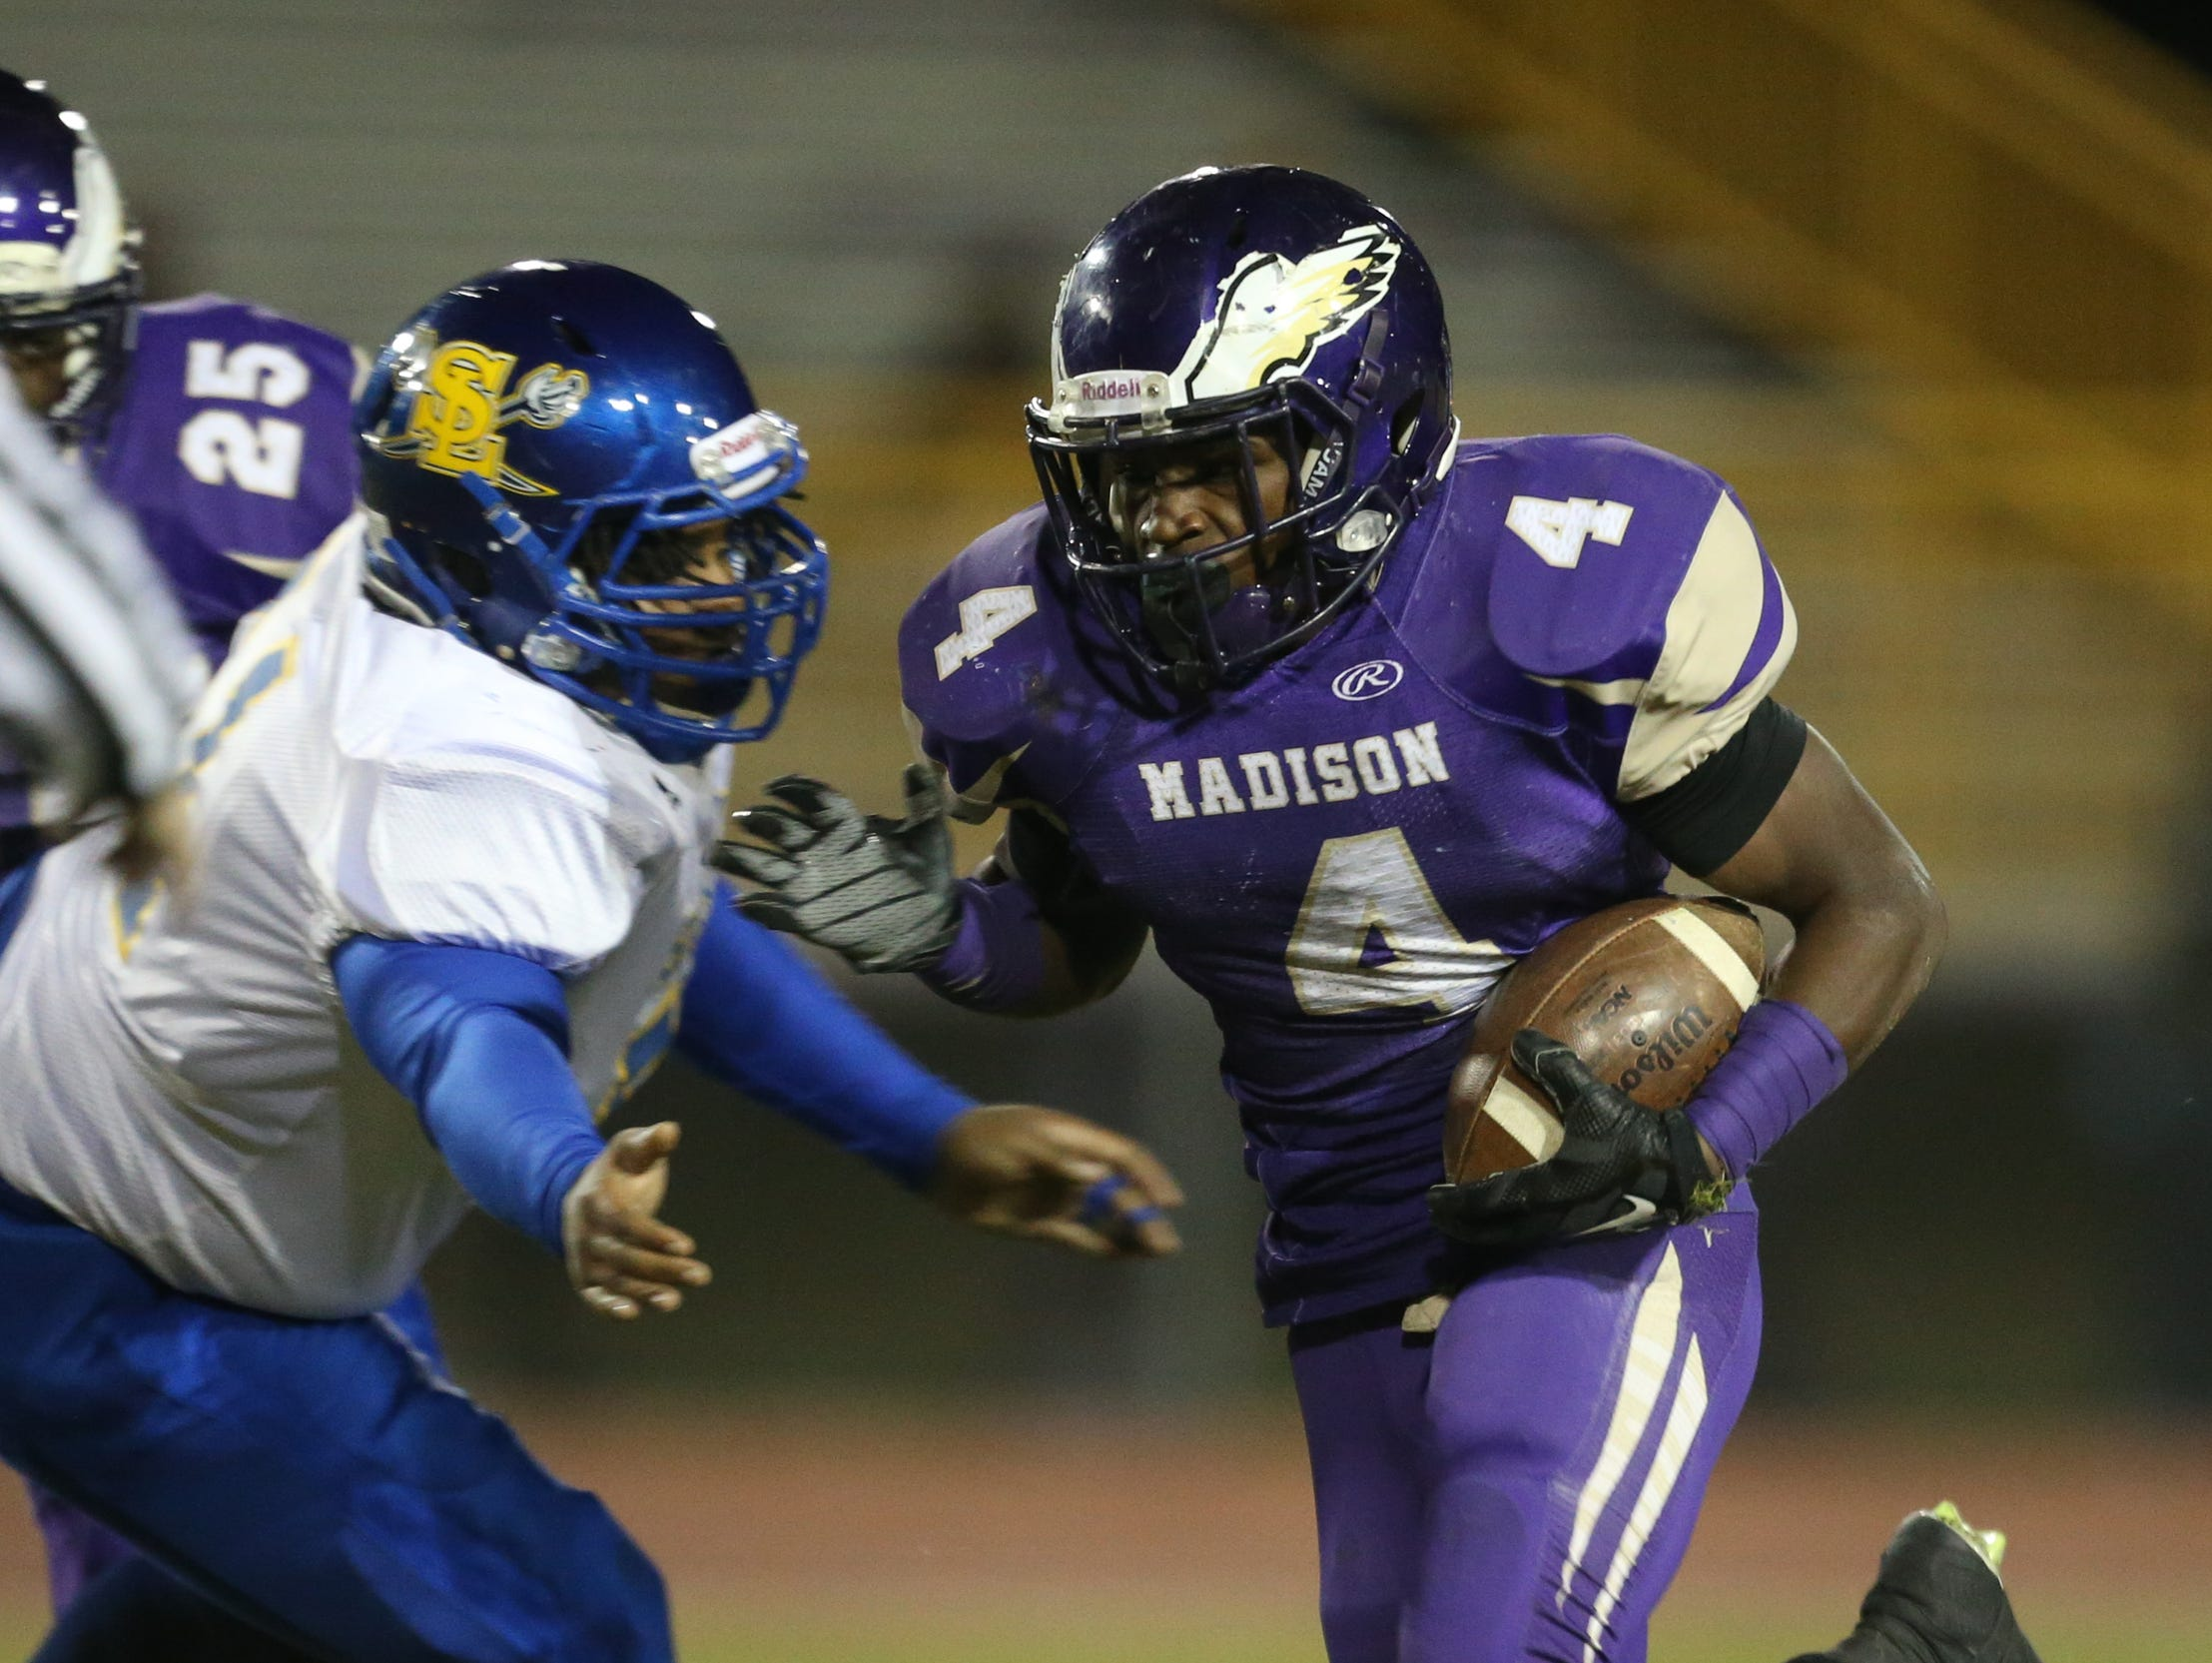 Madison Heights Madison high schools Lance Mitchell runs the ball against South Lake high school during first half action Friday, October 16, 2015 in Madison Heights Michigan.